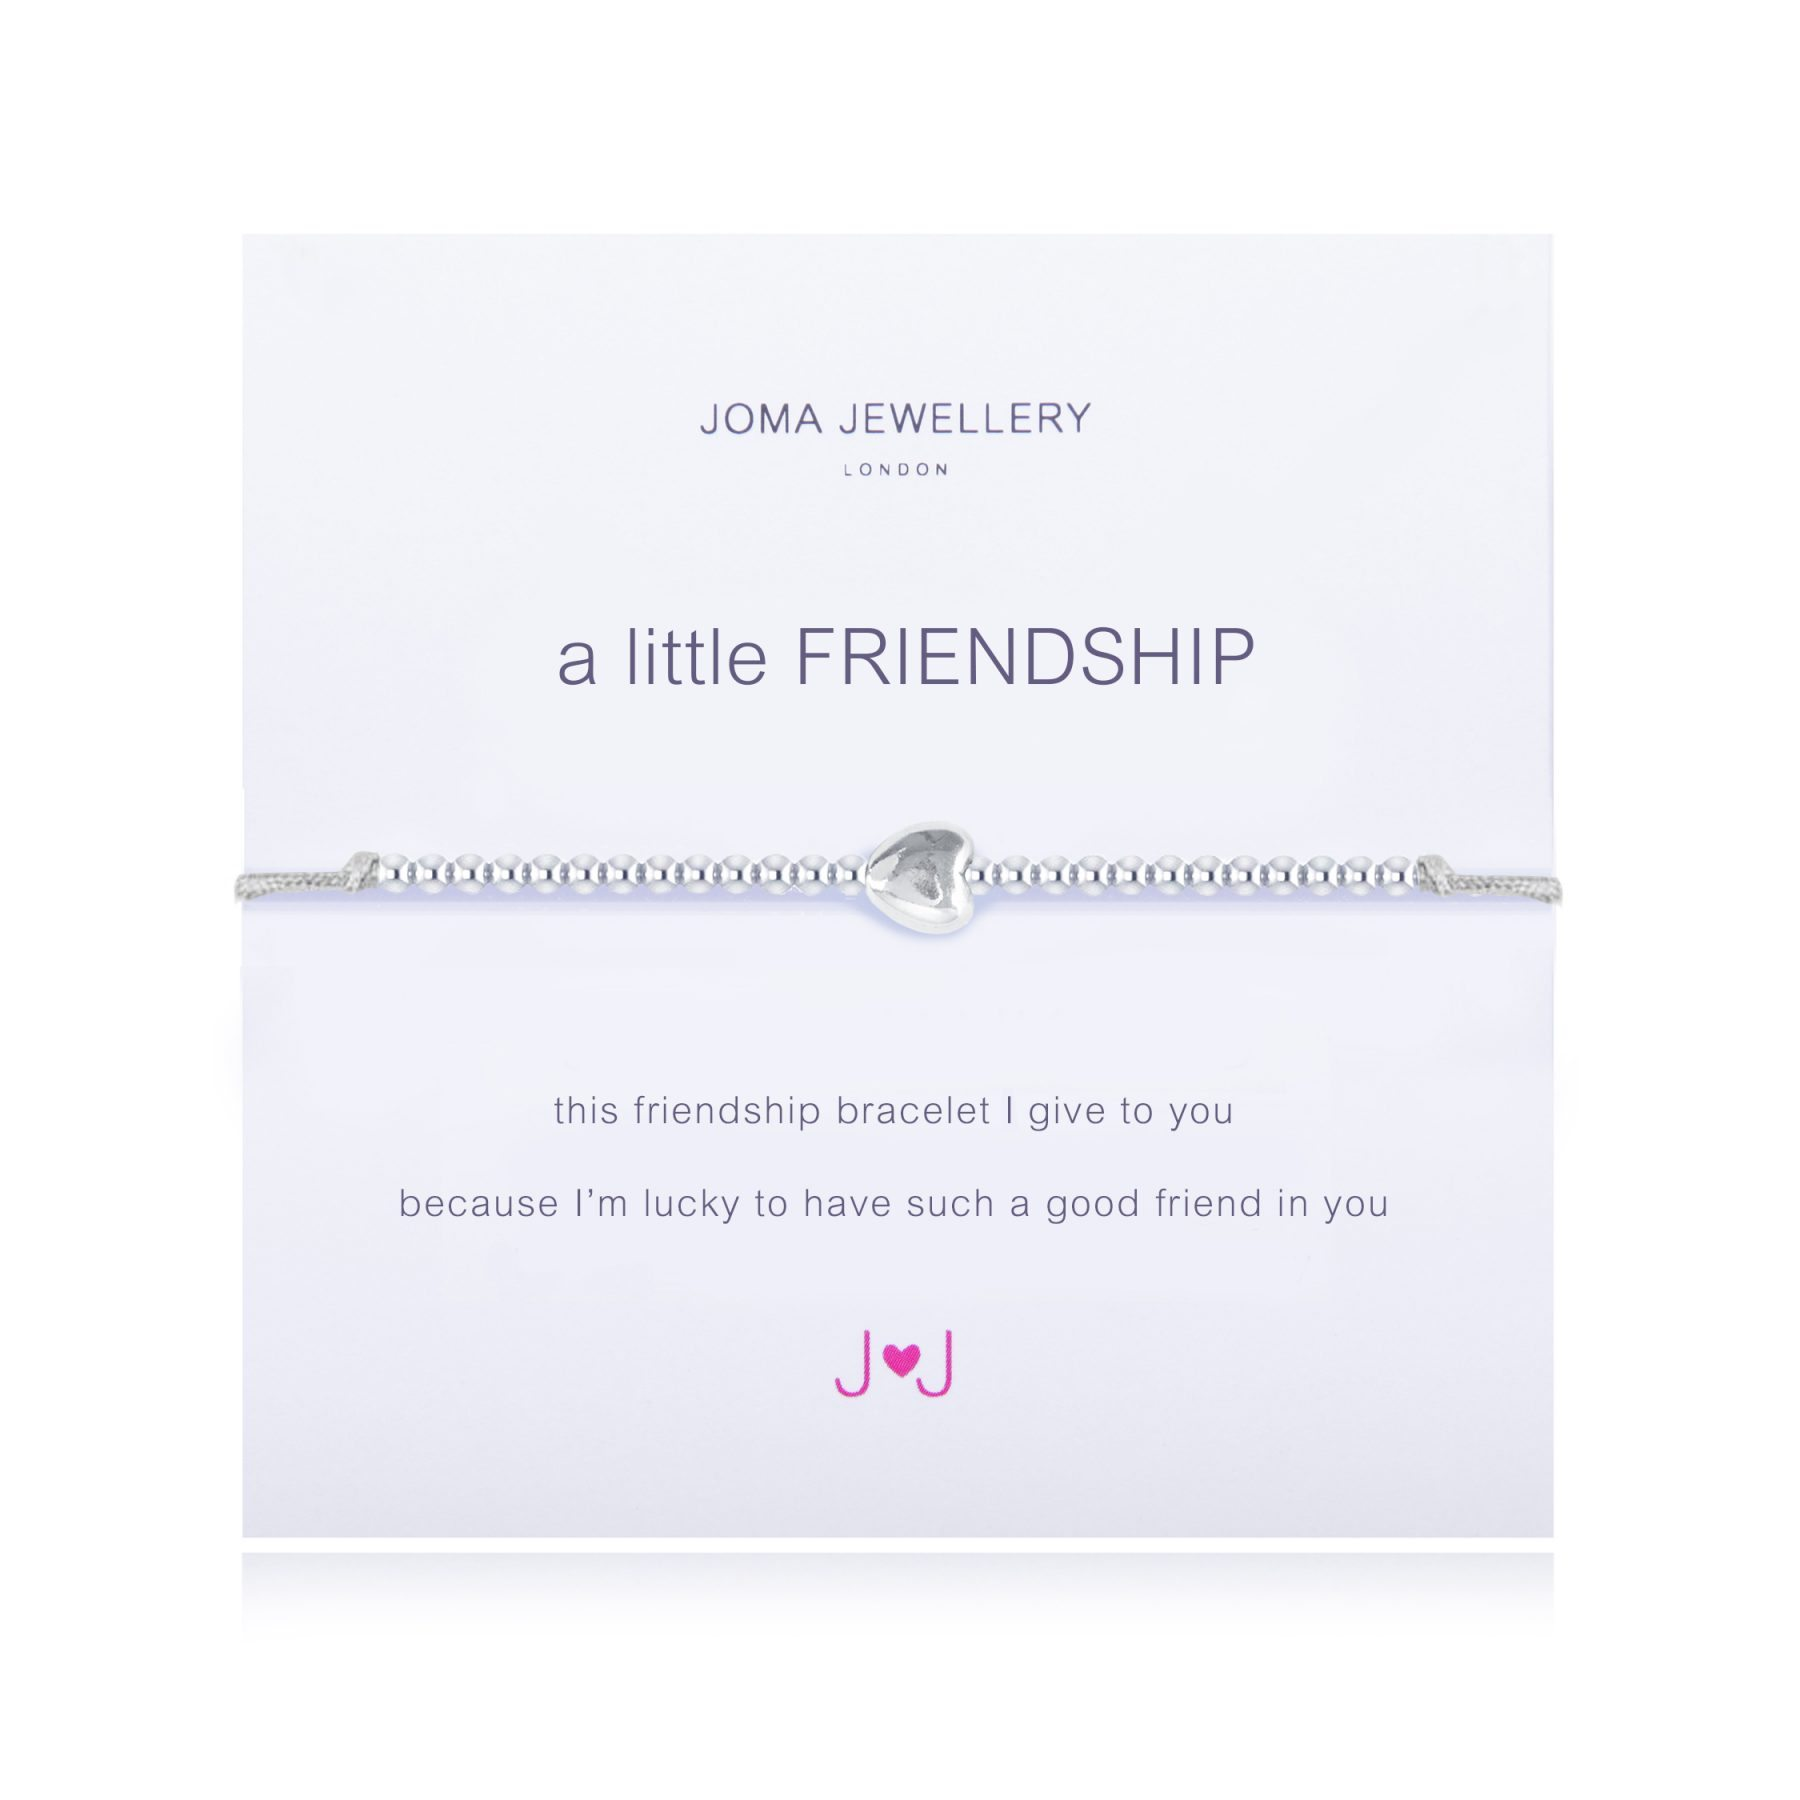 Joma Jewellery A Little Friendship Bracelet Peccadillos